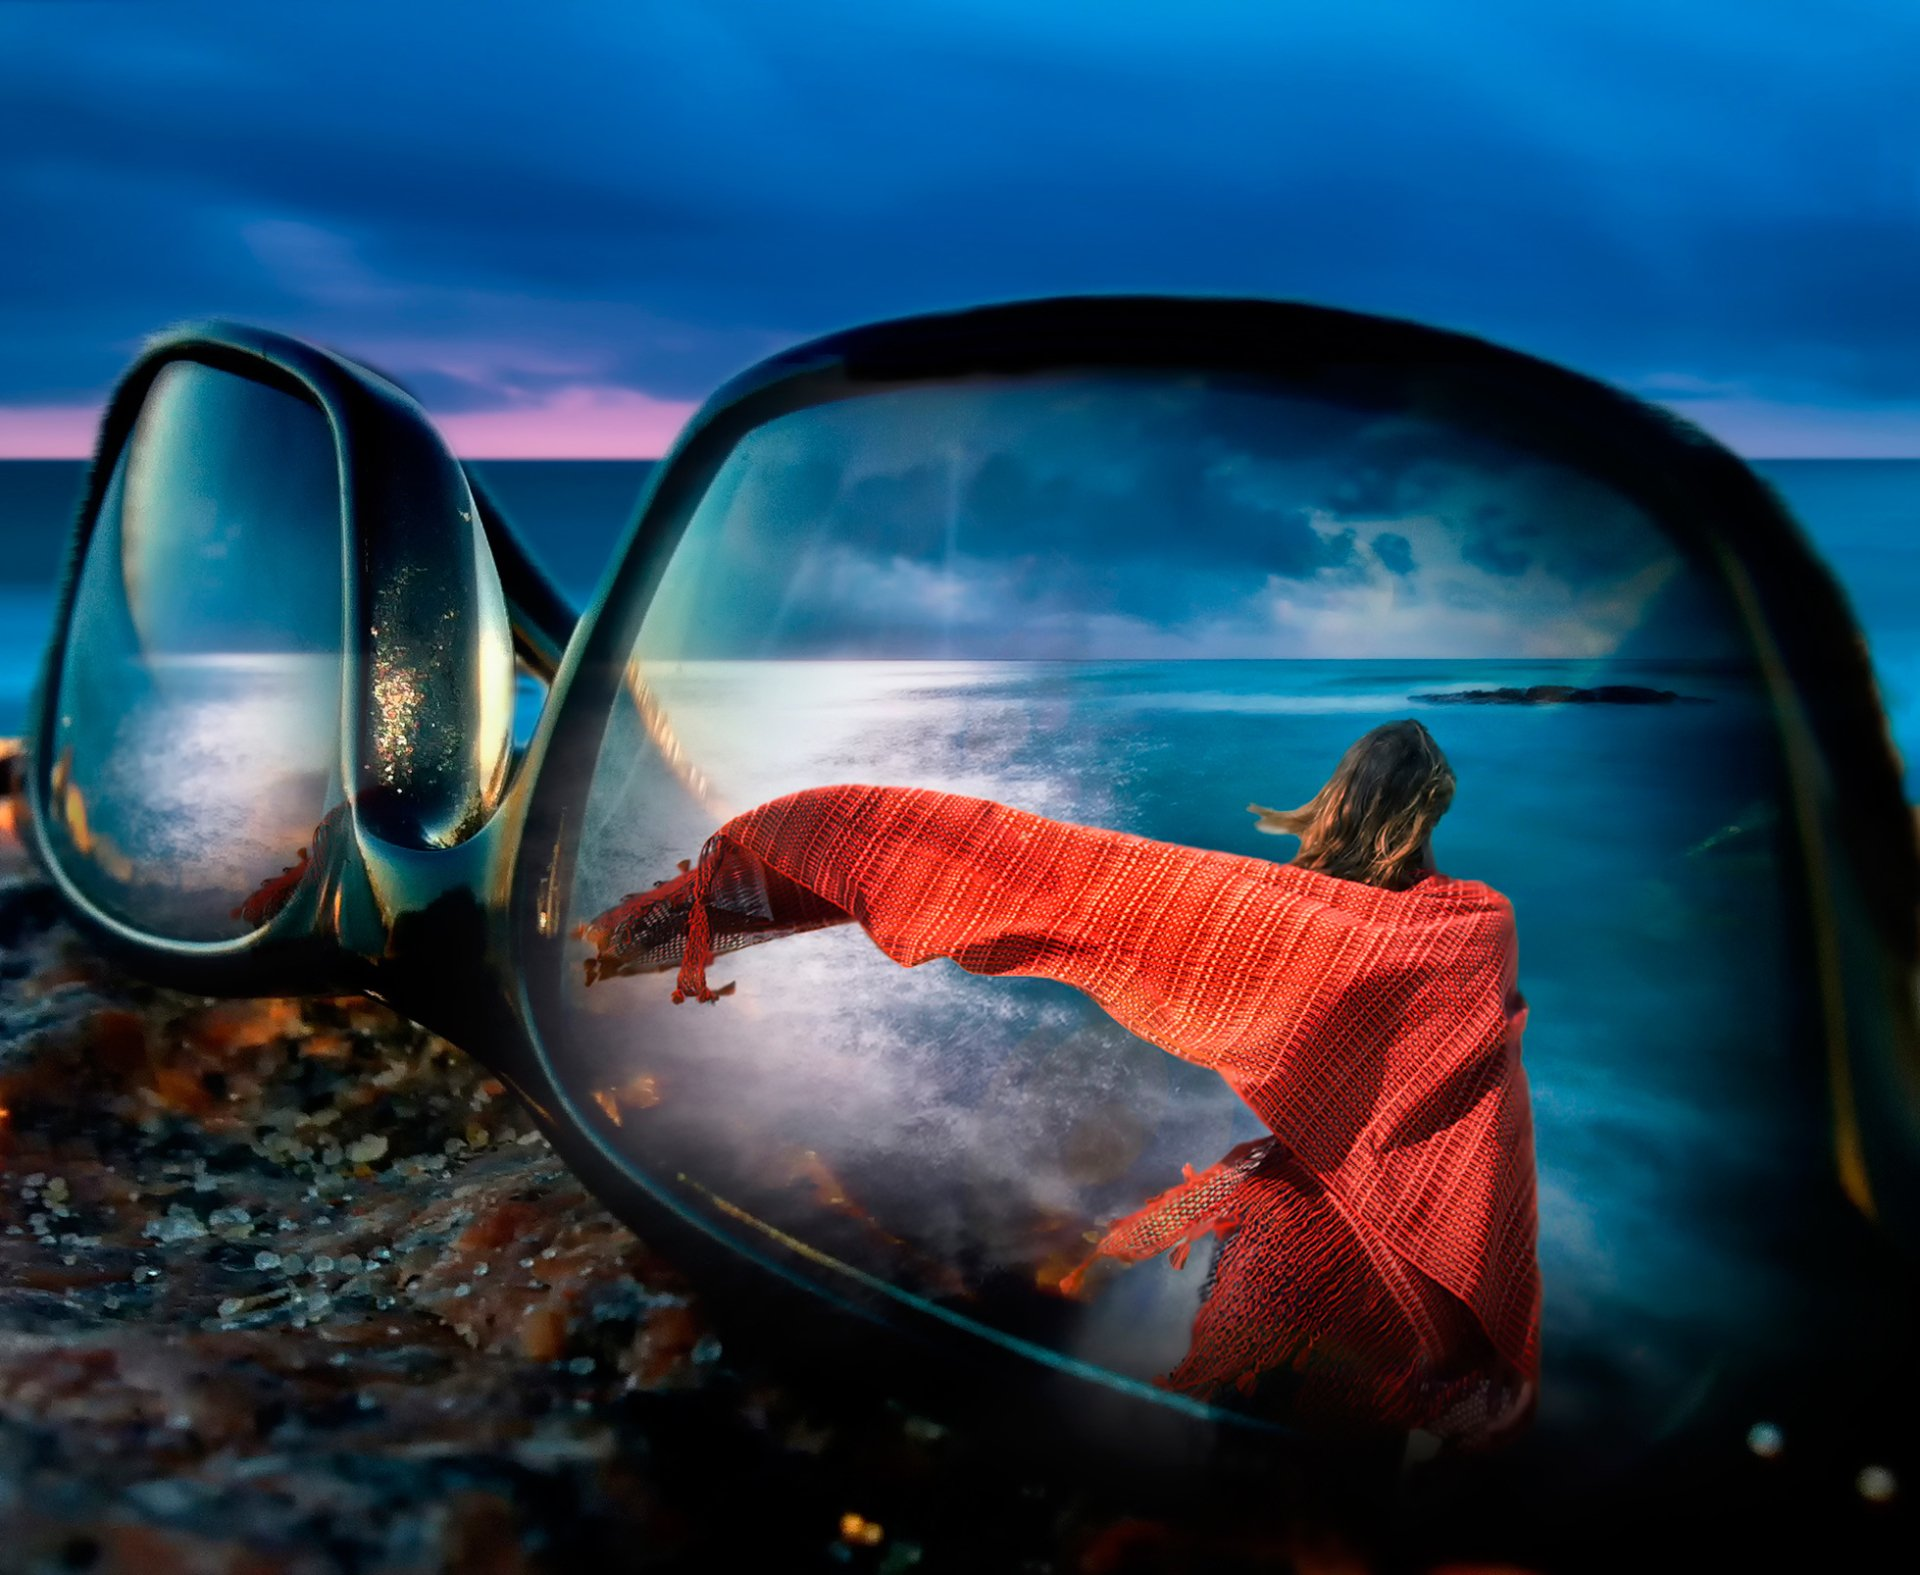 Man Made - Sunglasses  Woman Ocean Reflection Sky Manipulation Wallpaper